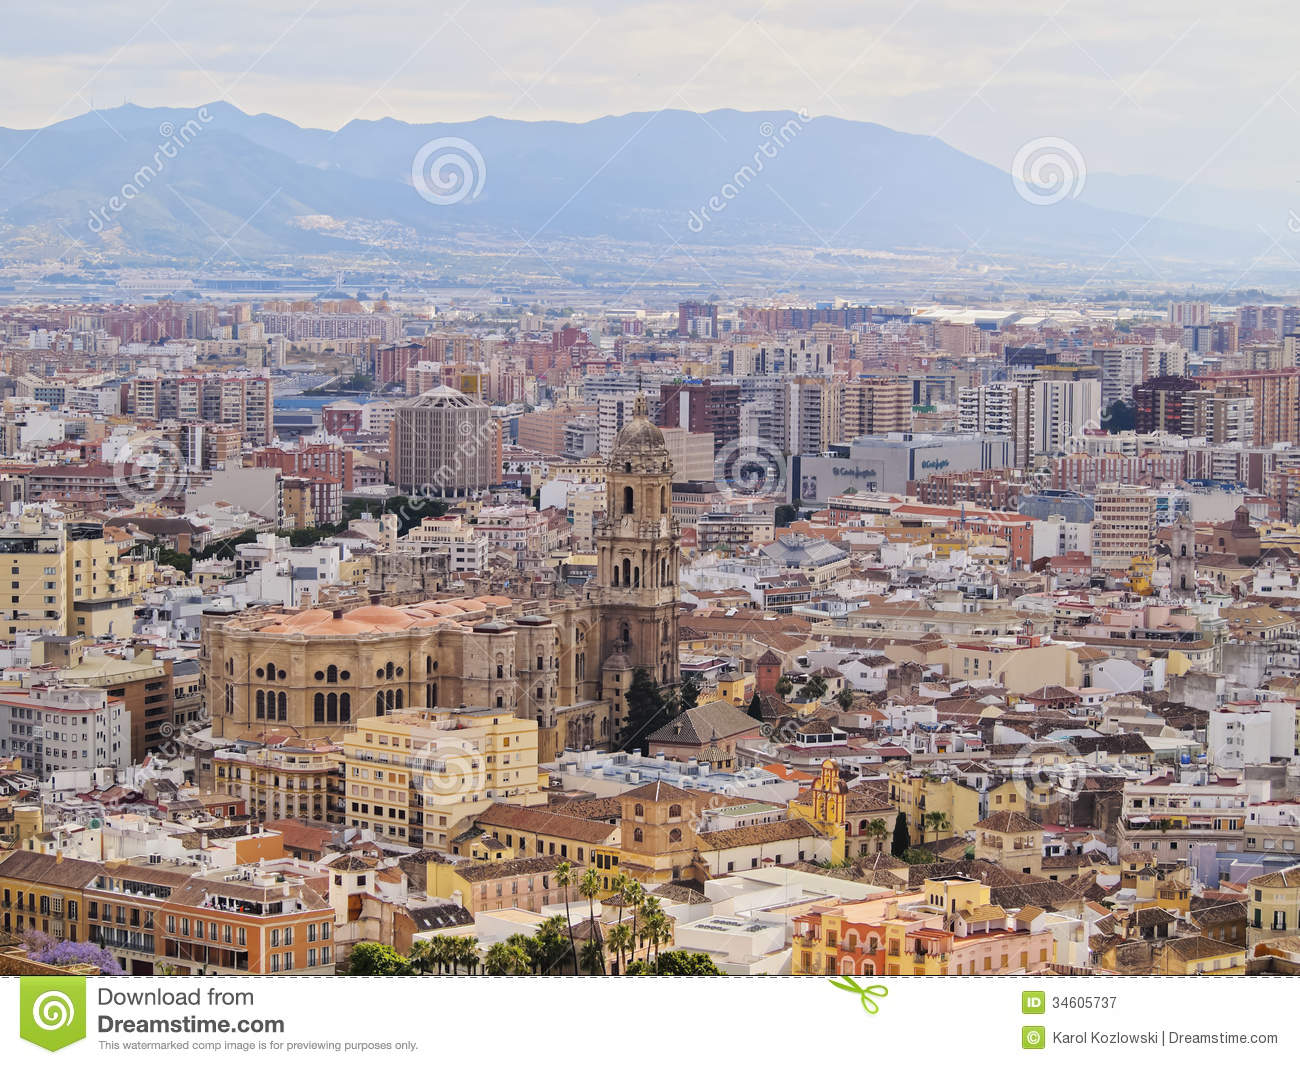 cathedral in malaga spain royalty free stock photography image 34605737. Black Bedroom Furniture Sets. Home Design Ideas